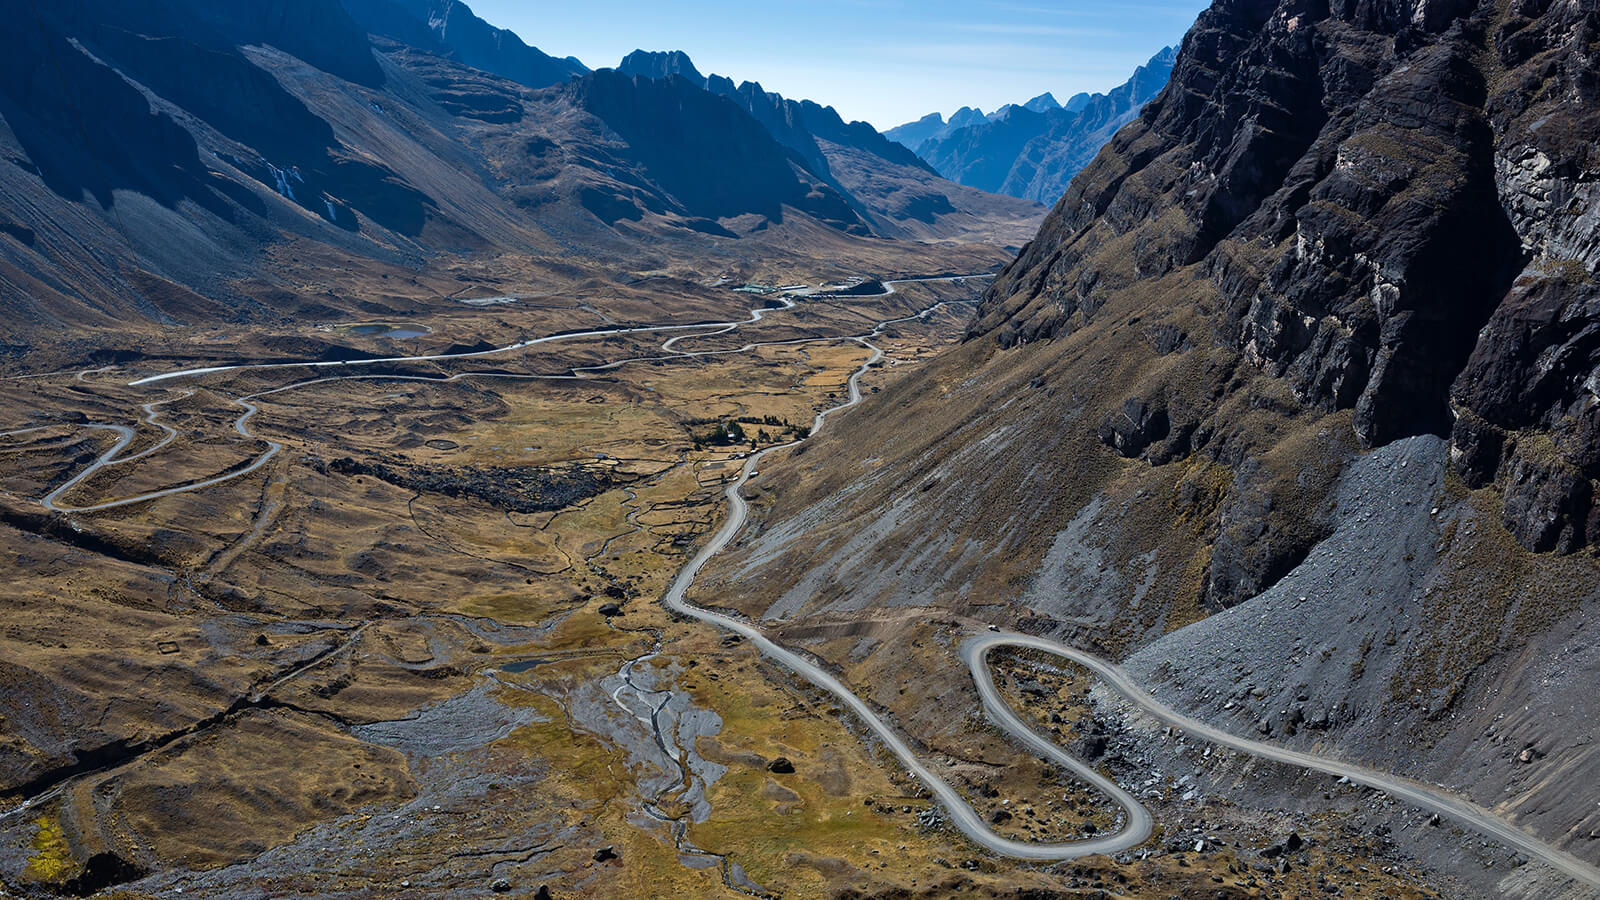 You know you are in Bolivia when you encounter some of the world's most dangerous mountain roads